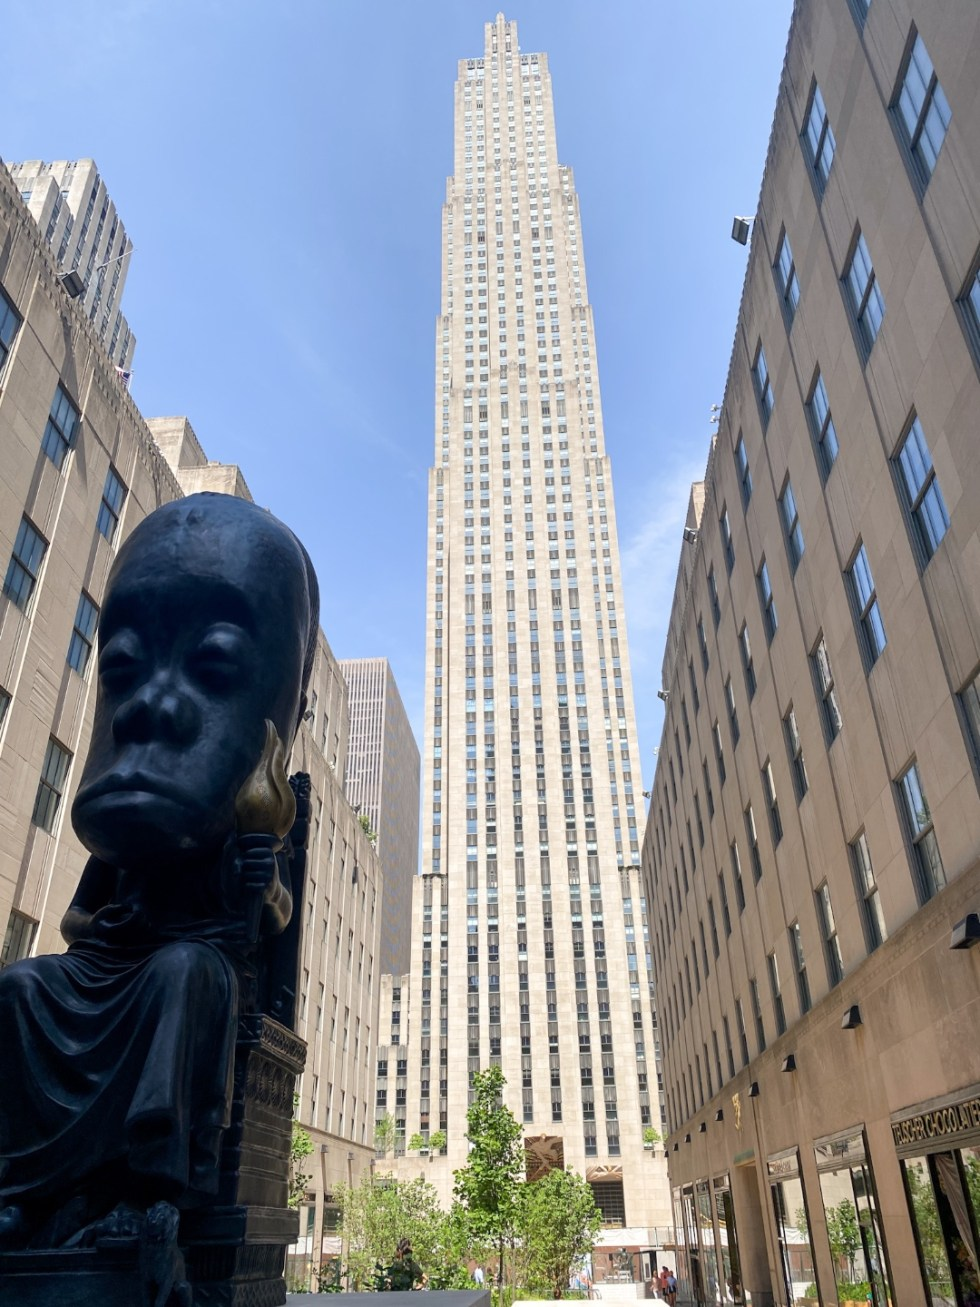 NYC Summer Weekend: Things to Do in NYC in the Summer - I'm Fixin' To - @imfixintoblog   NYC Summer Weekend by popular NC travel blog, I'm Fixin' To: image of the Rockefeller Center sculpture.